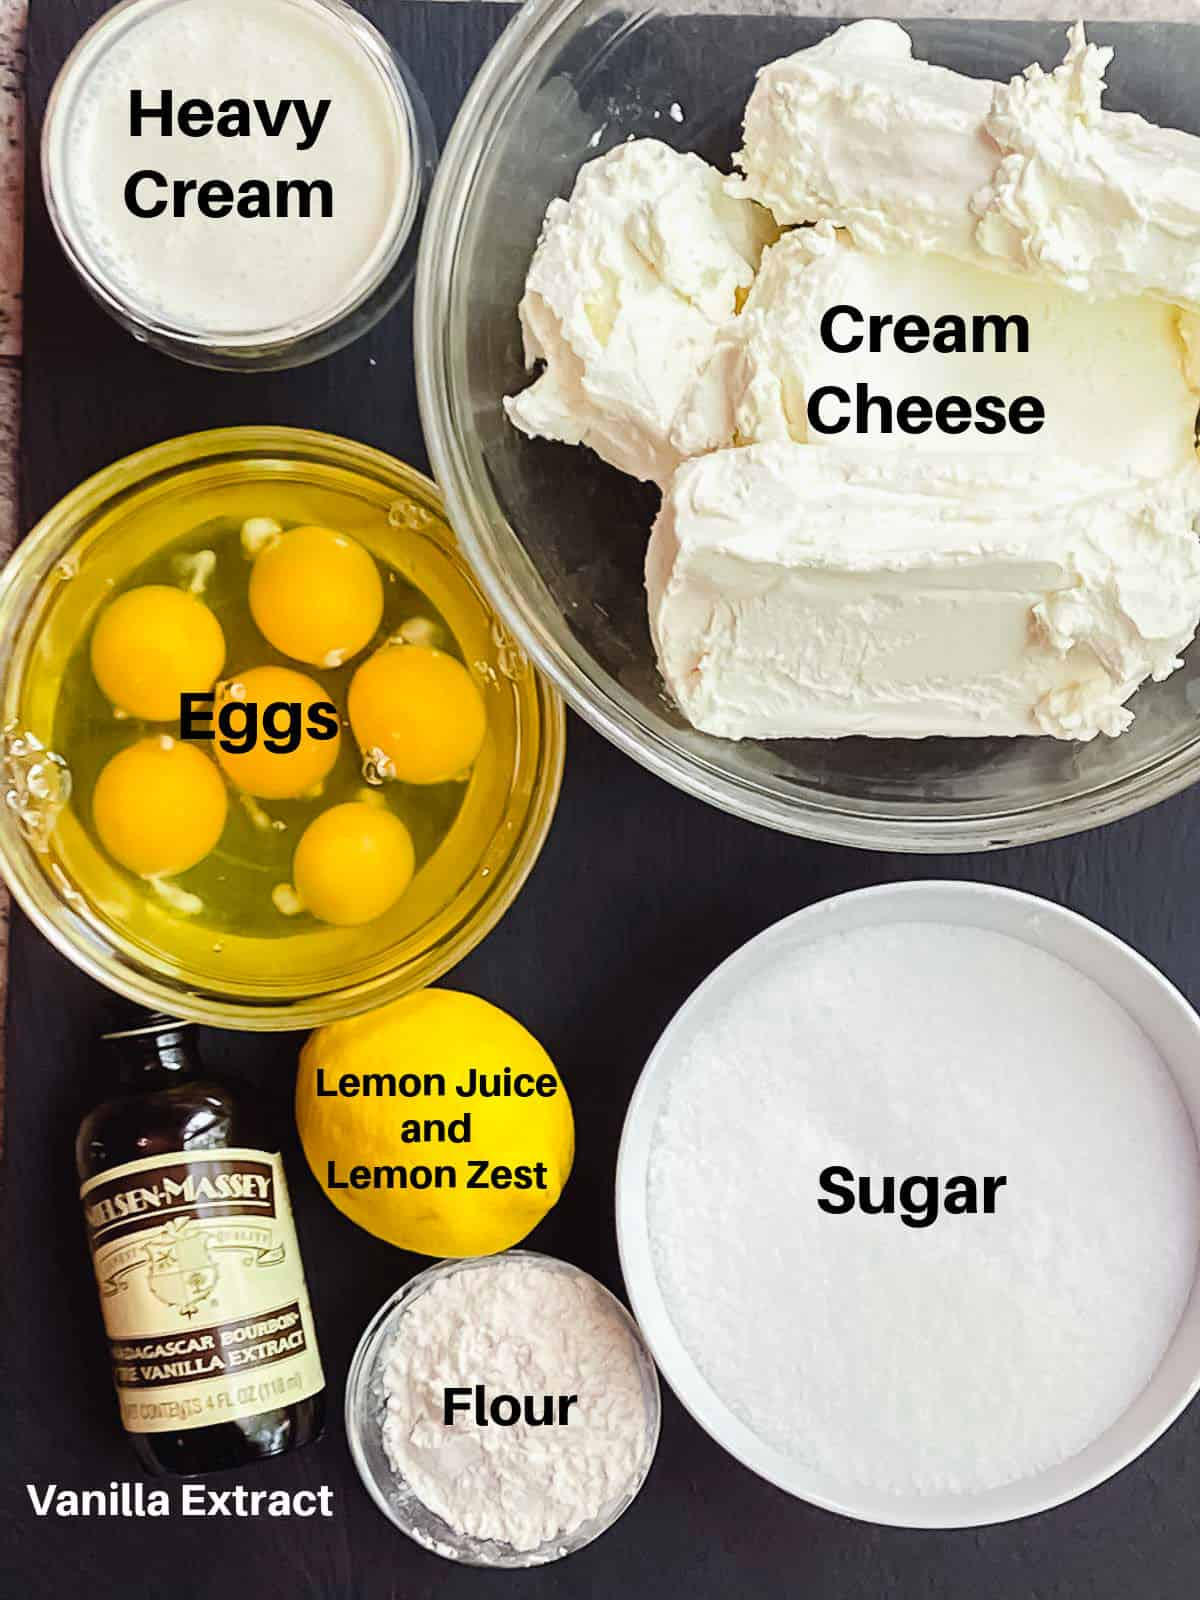 Ingredients for Basque cheesecake labeled: cream cheese, heavy cream, eggs, sugar, lemon, flour and vanilla extract